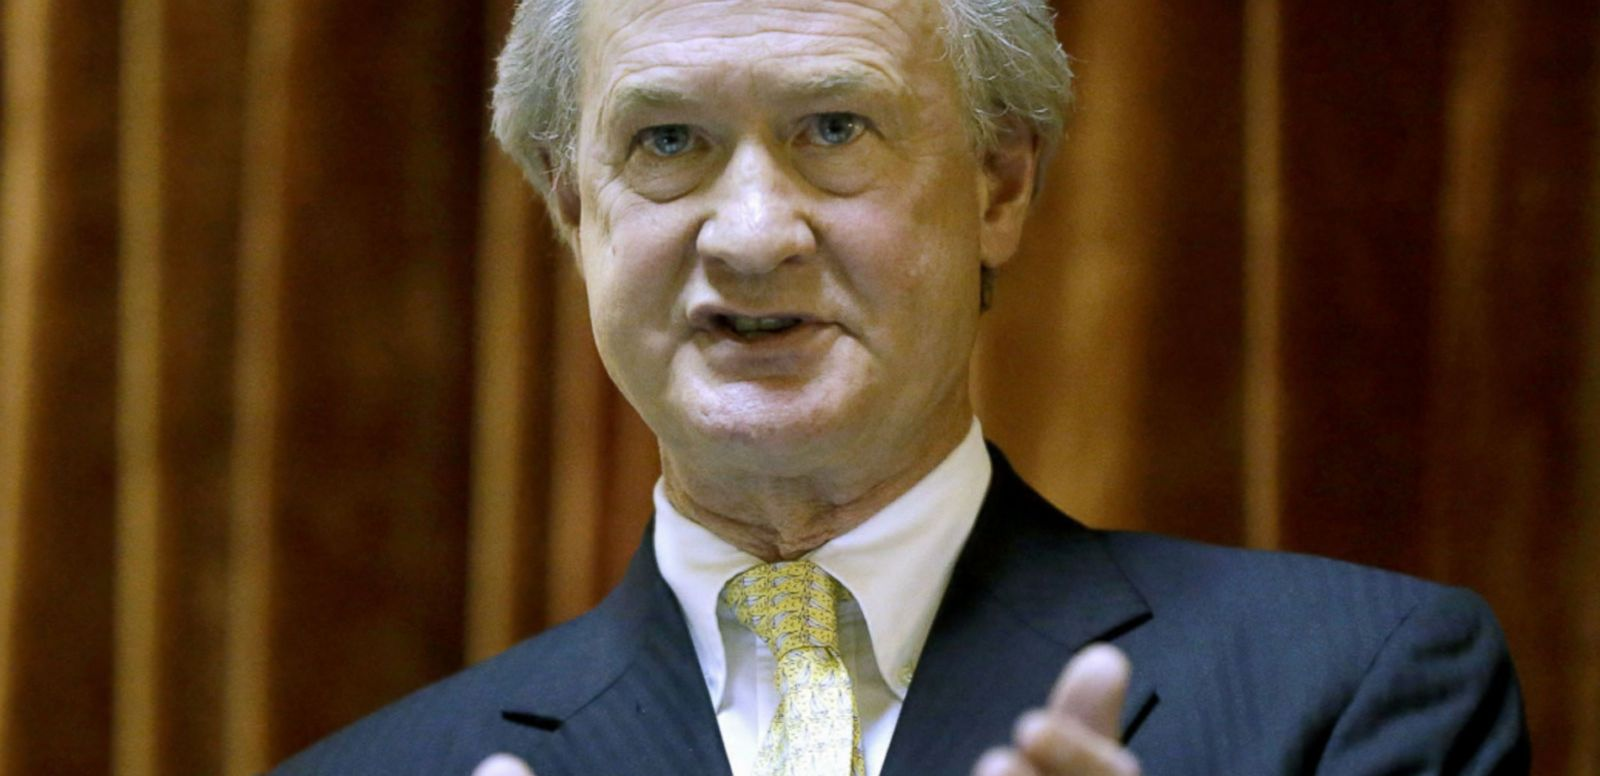 VIDEO: Lincoln Chafee's Long Shot